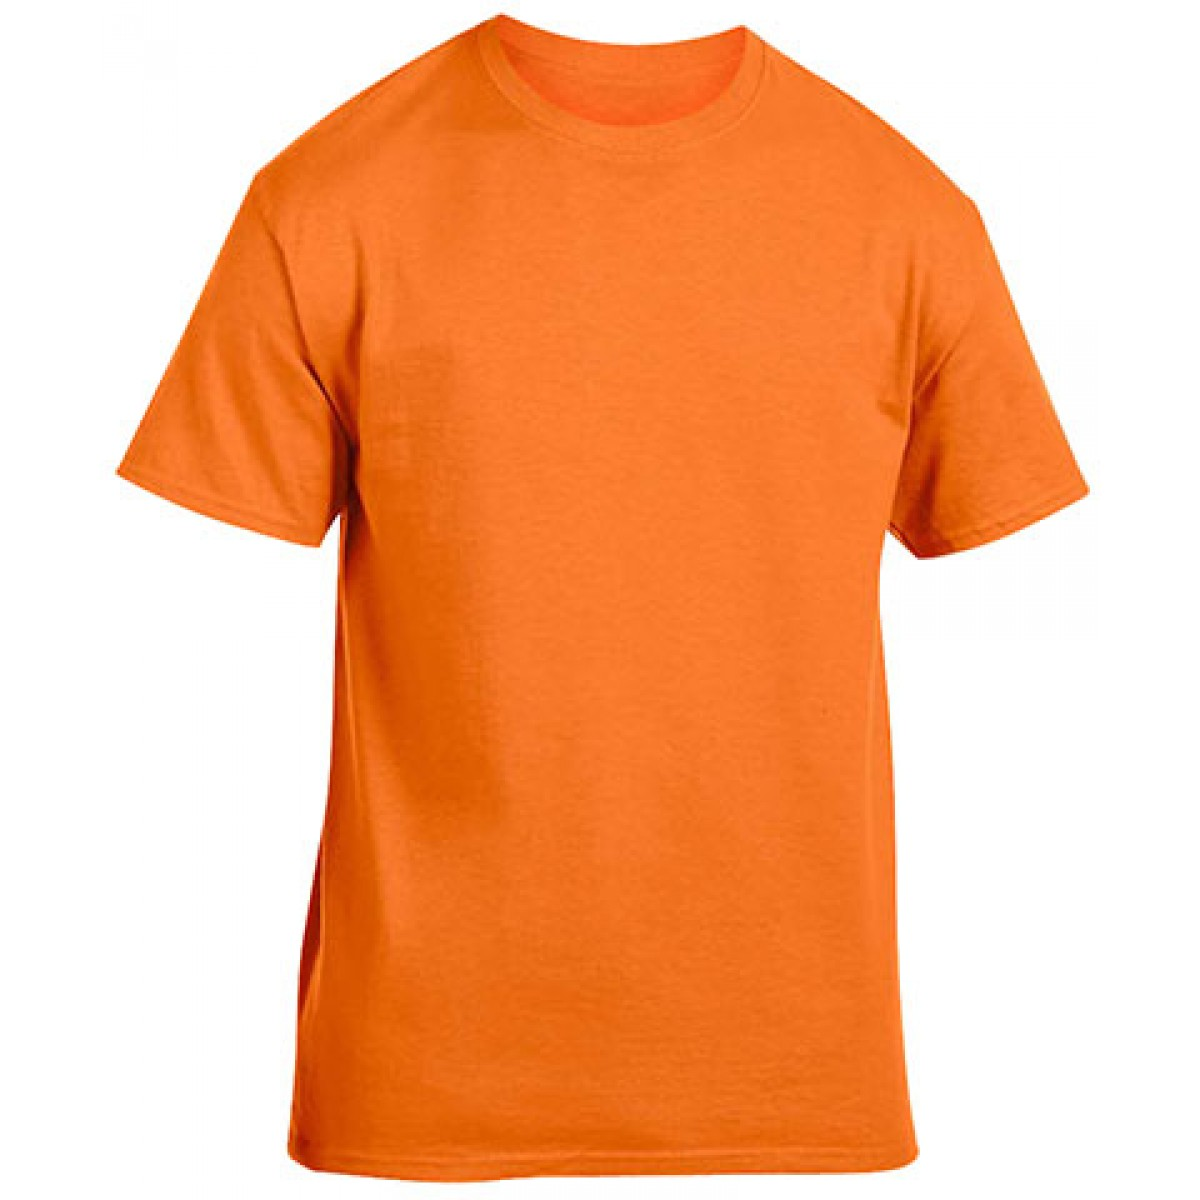 Heavy Cotton Activewear T-Shirt-Safety Orange-2XL